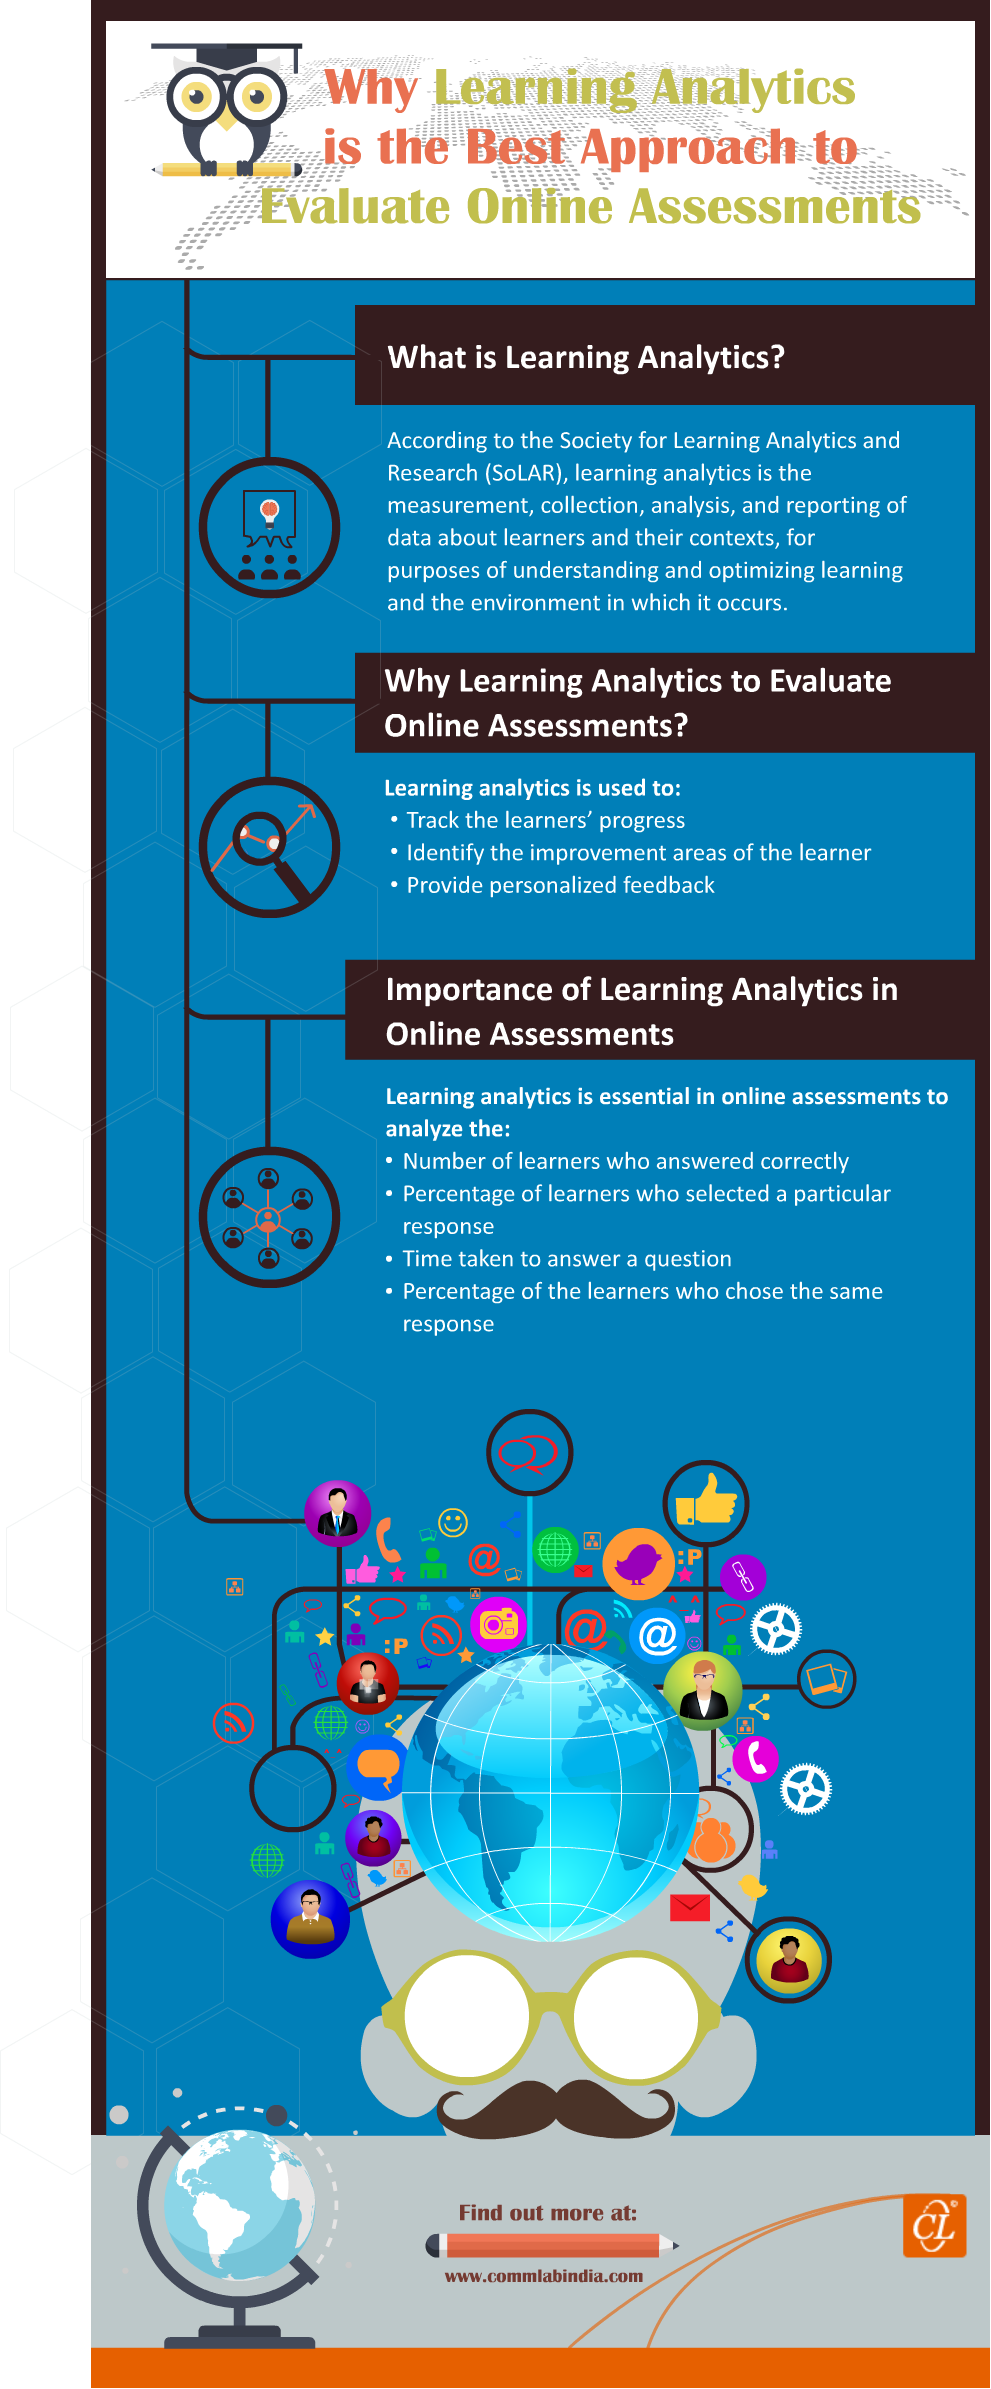 Why Learning Analytics is the Best Approach to Evaluate Online Assessments[Infographic]